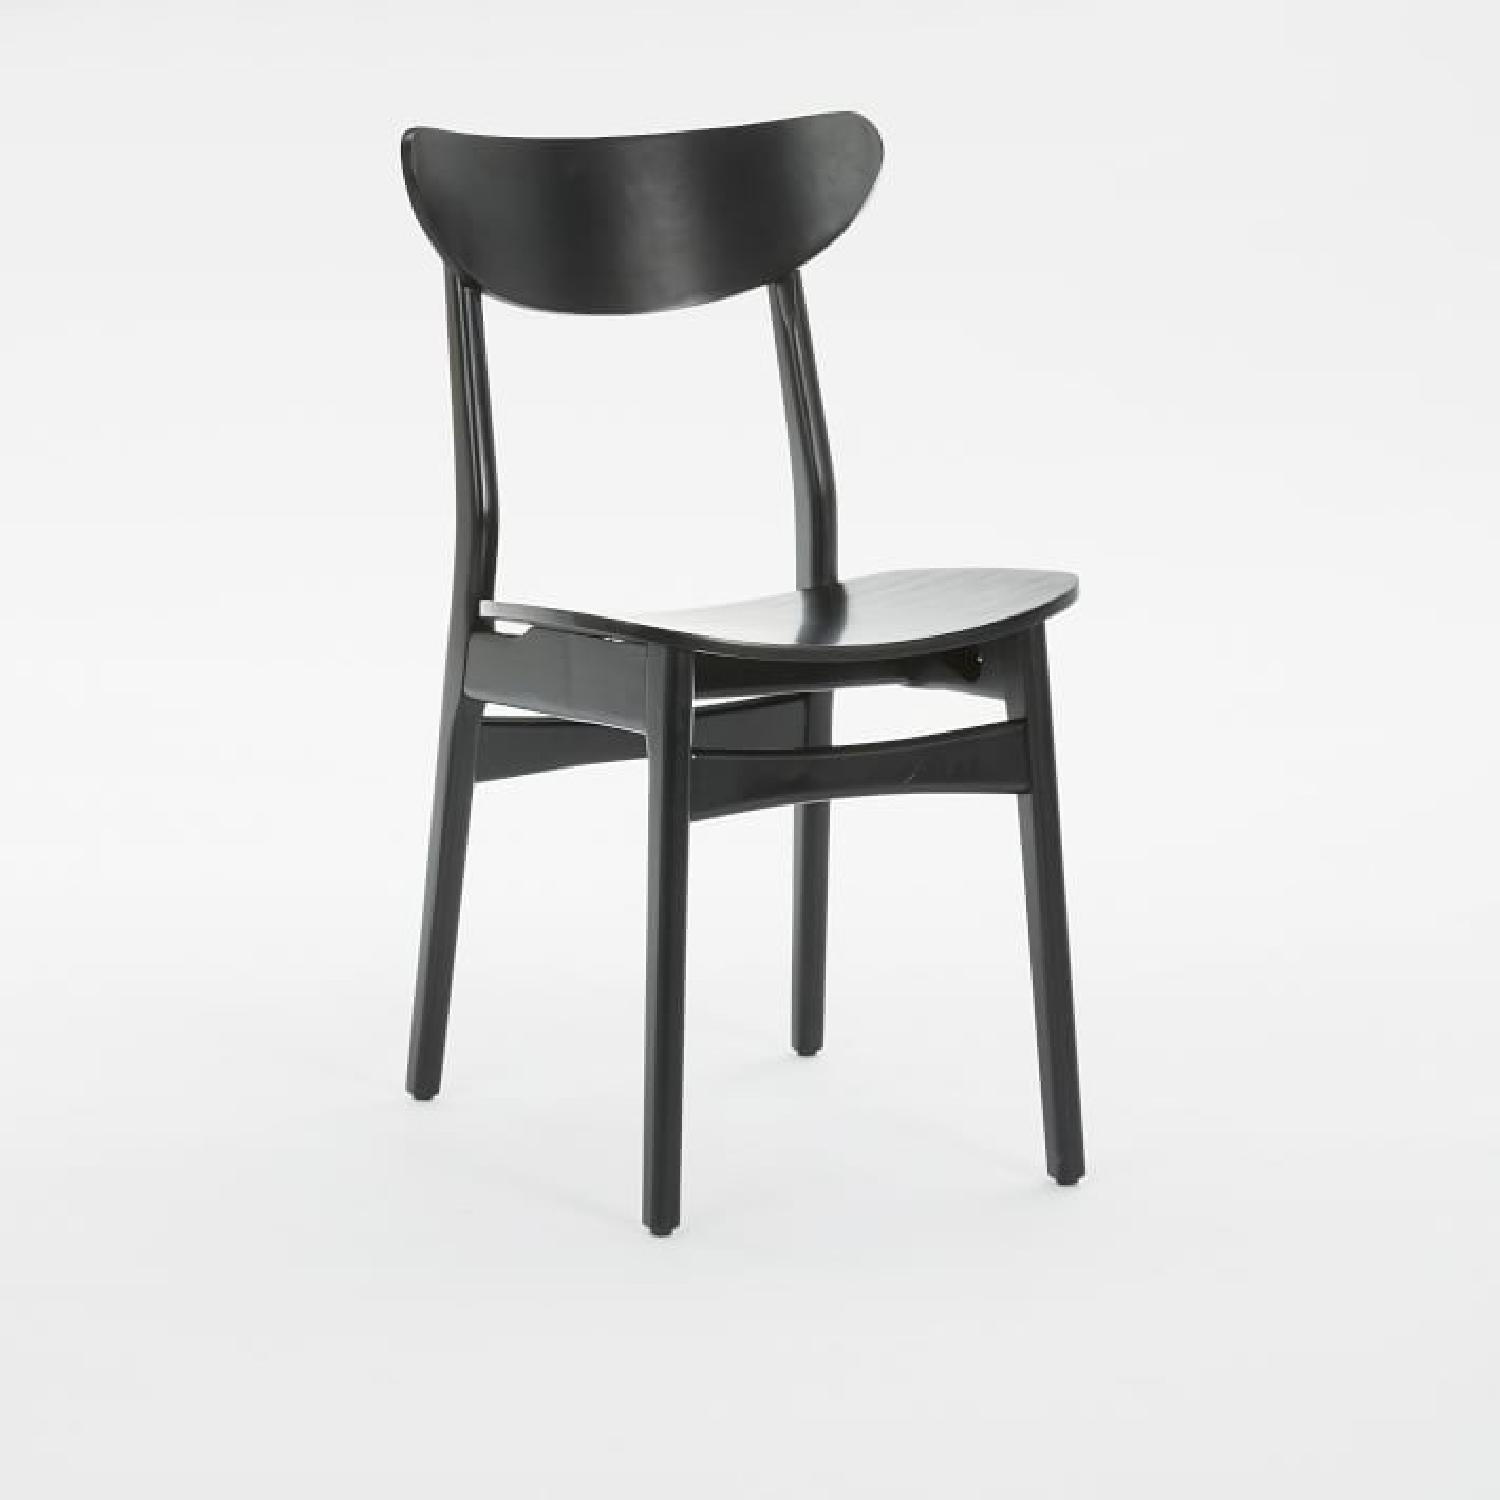 West Elm Classic Cafe Dining Chair in Black Lacquer - image-3